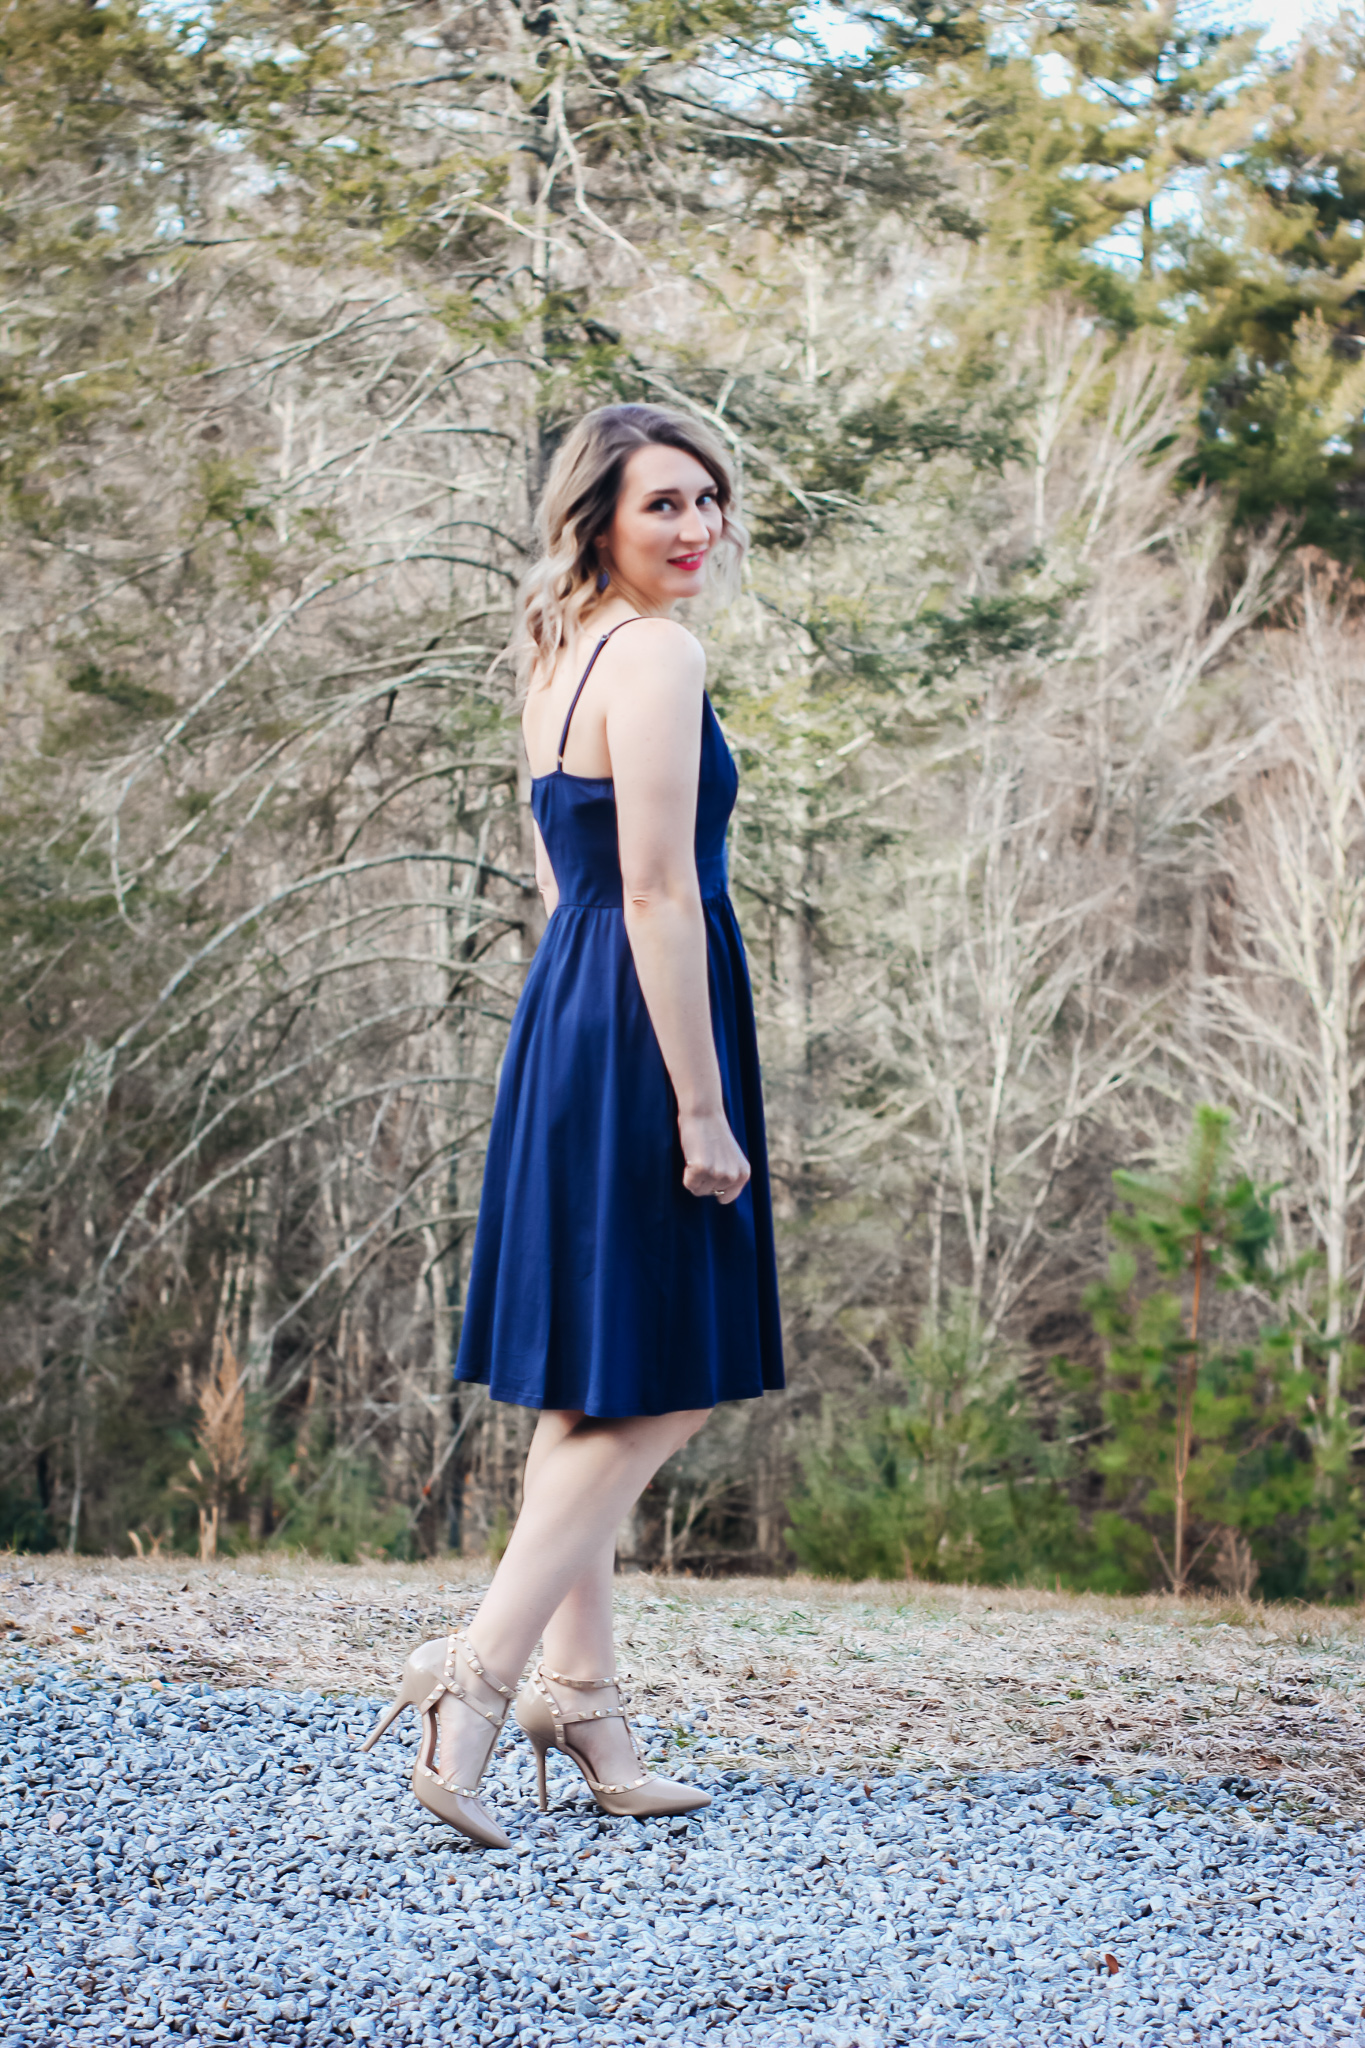 Laura Mintz, amazon affordable spring dress looking over shoulder in navy dress